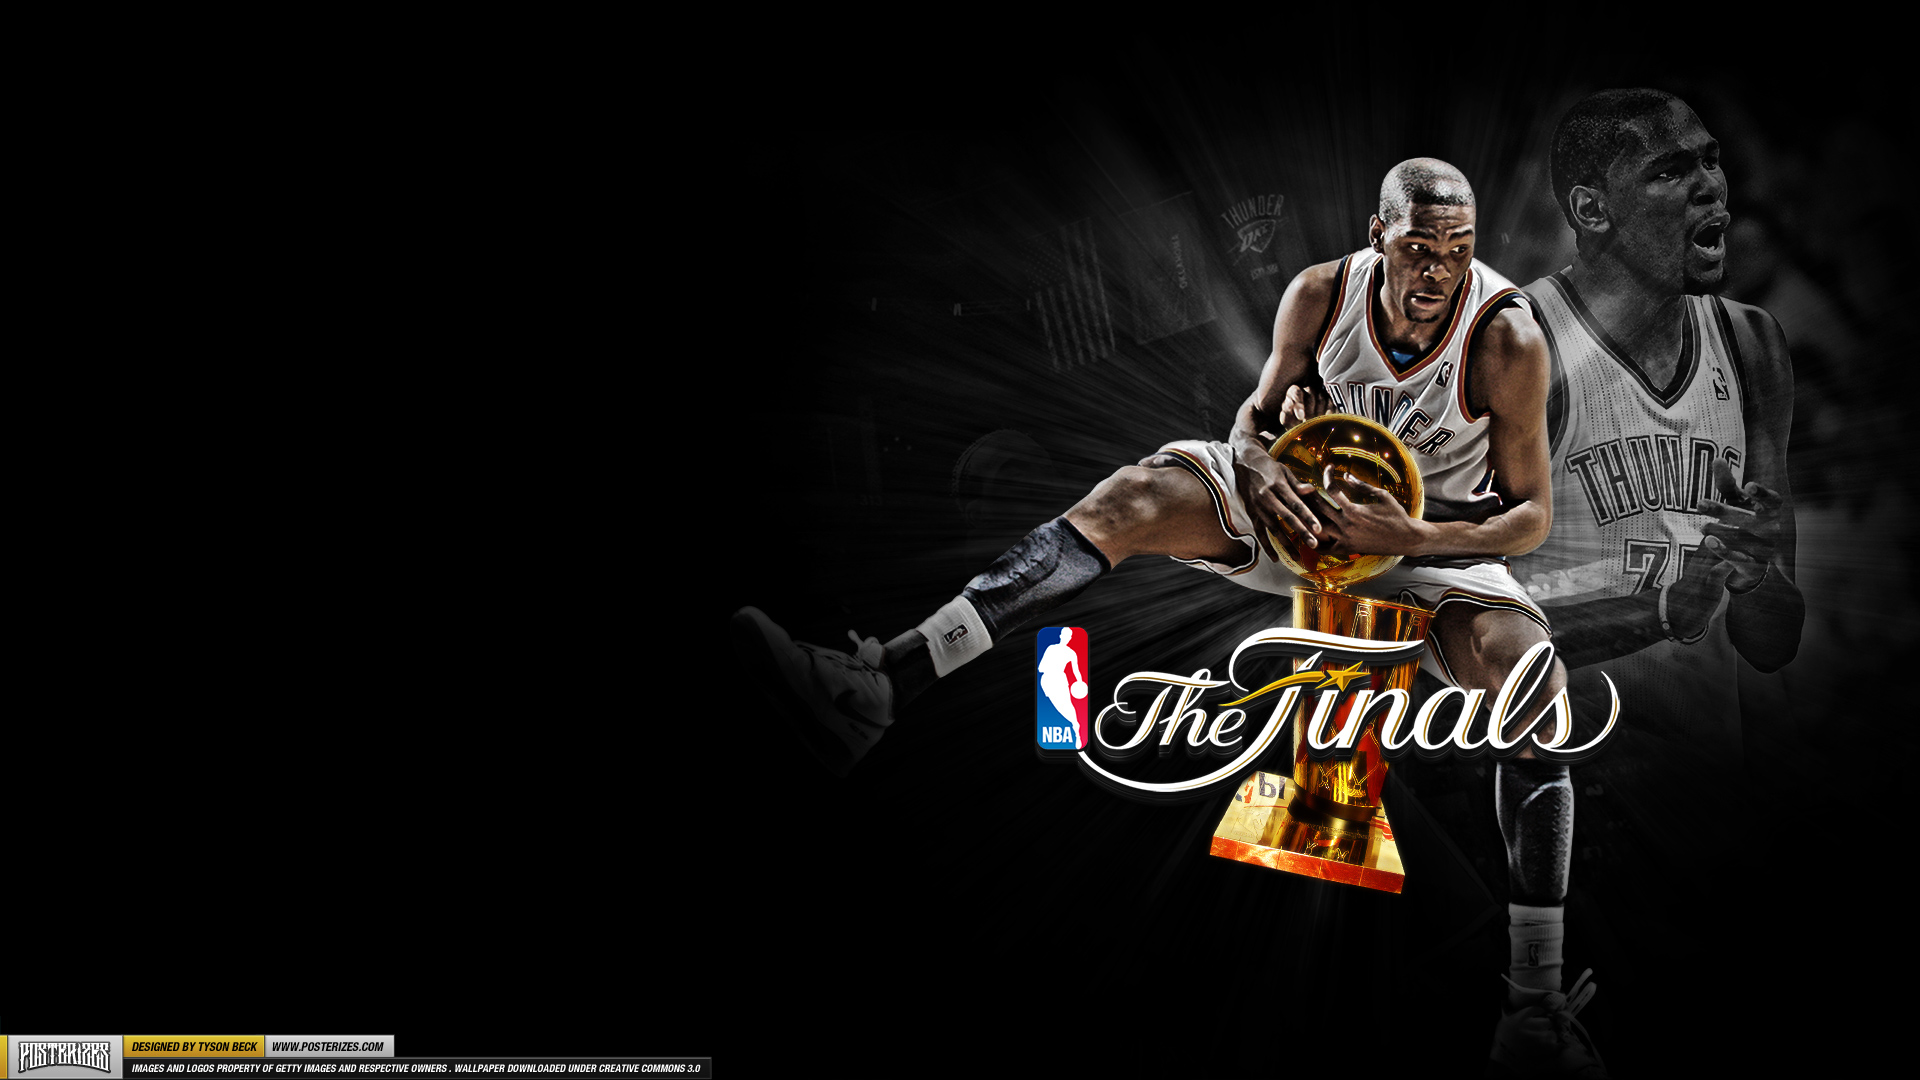 NBA Finals Wallpaper - WallpaperSafari